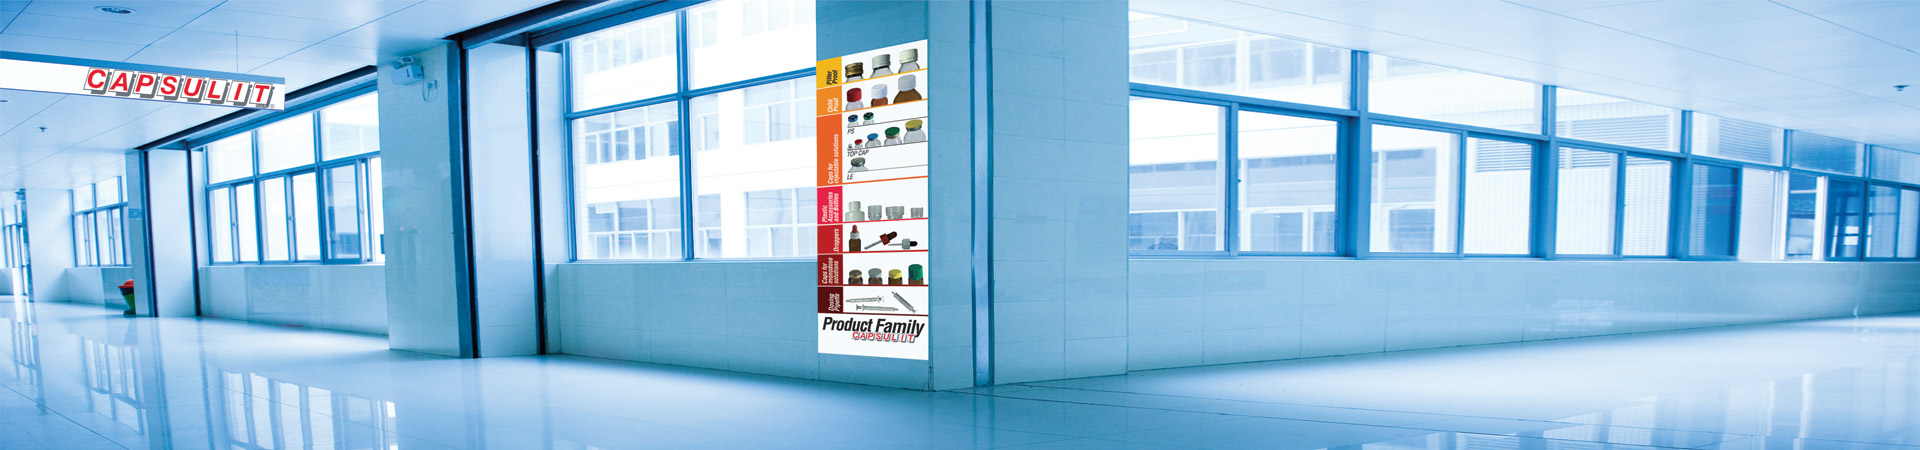 capsulit-home-banner-2